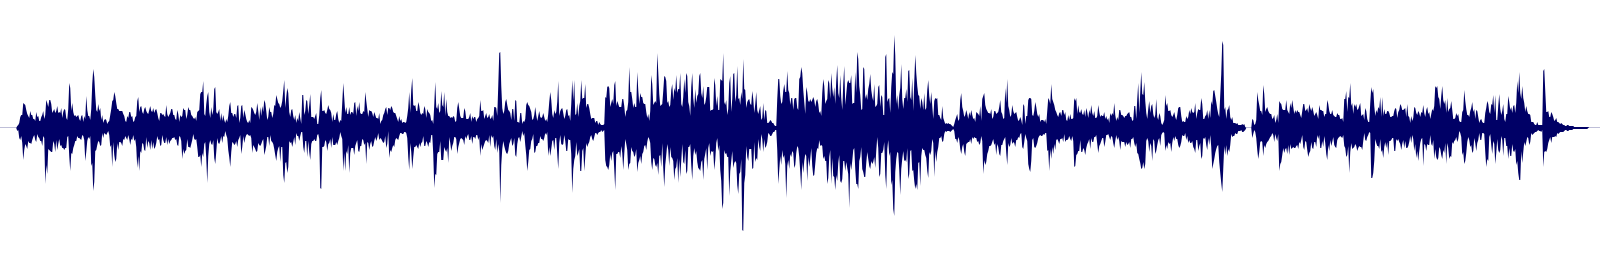 waveform of track #109025